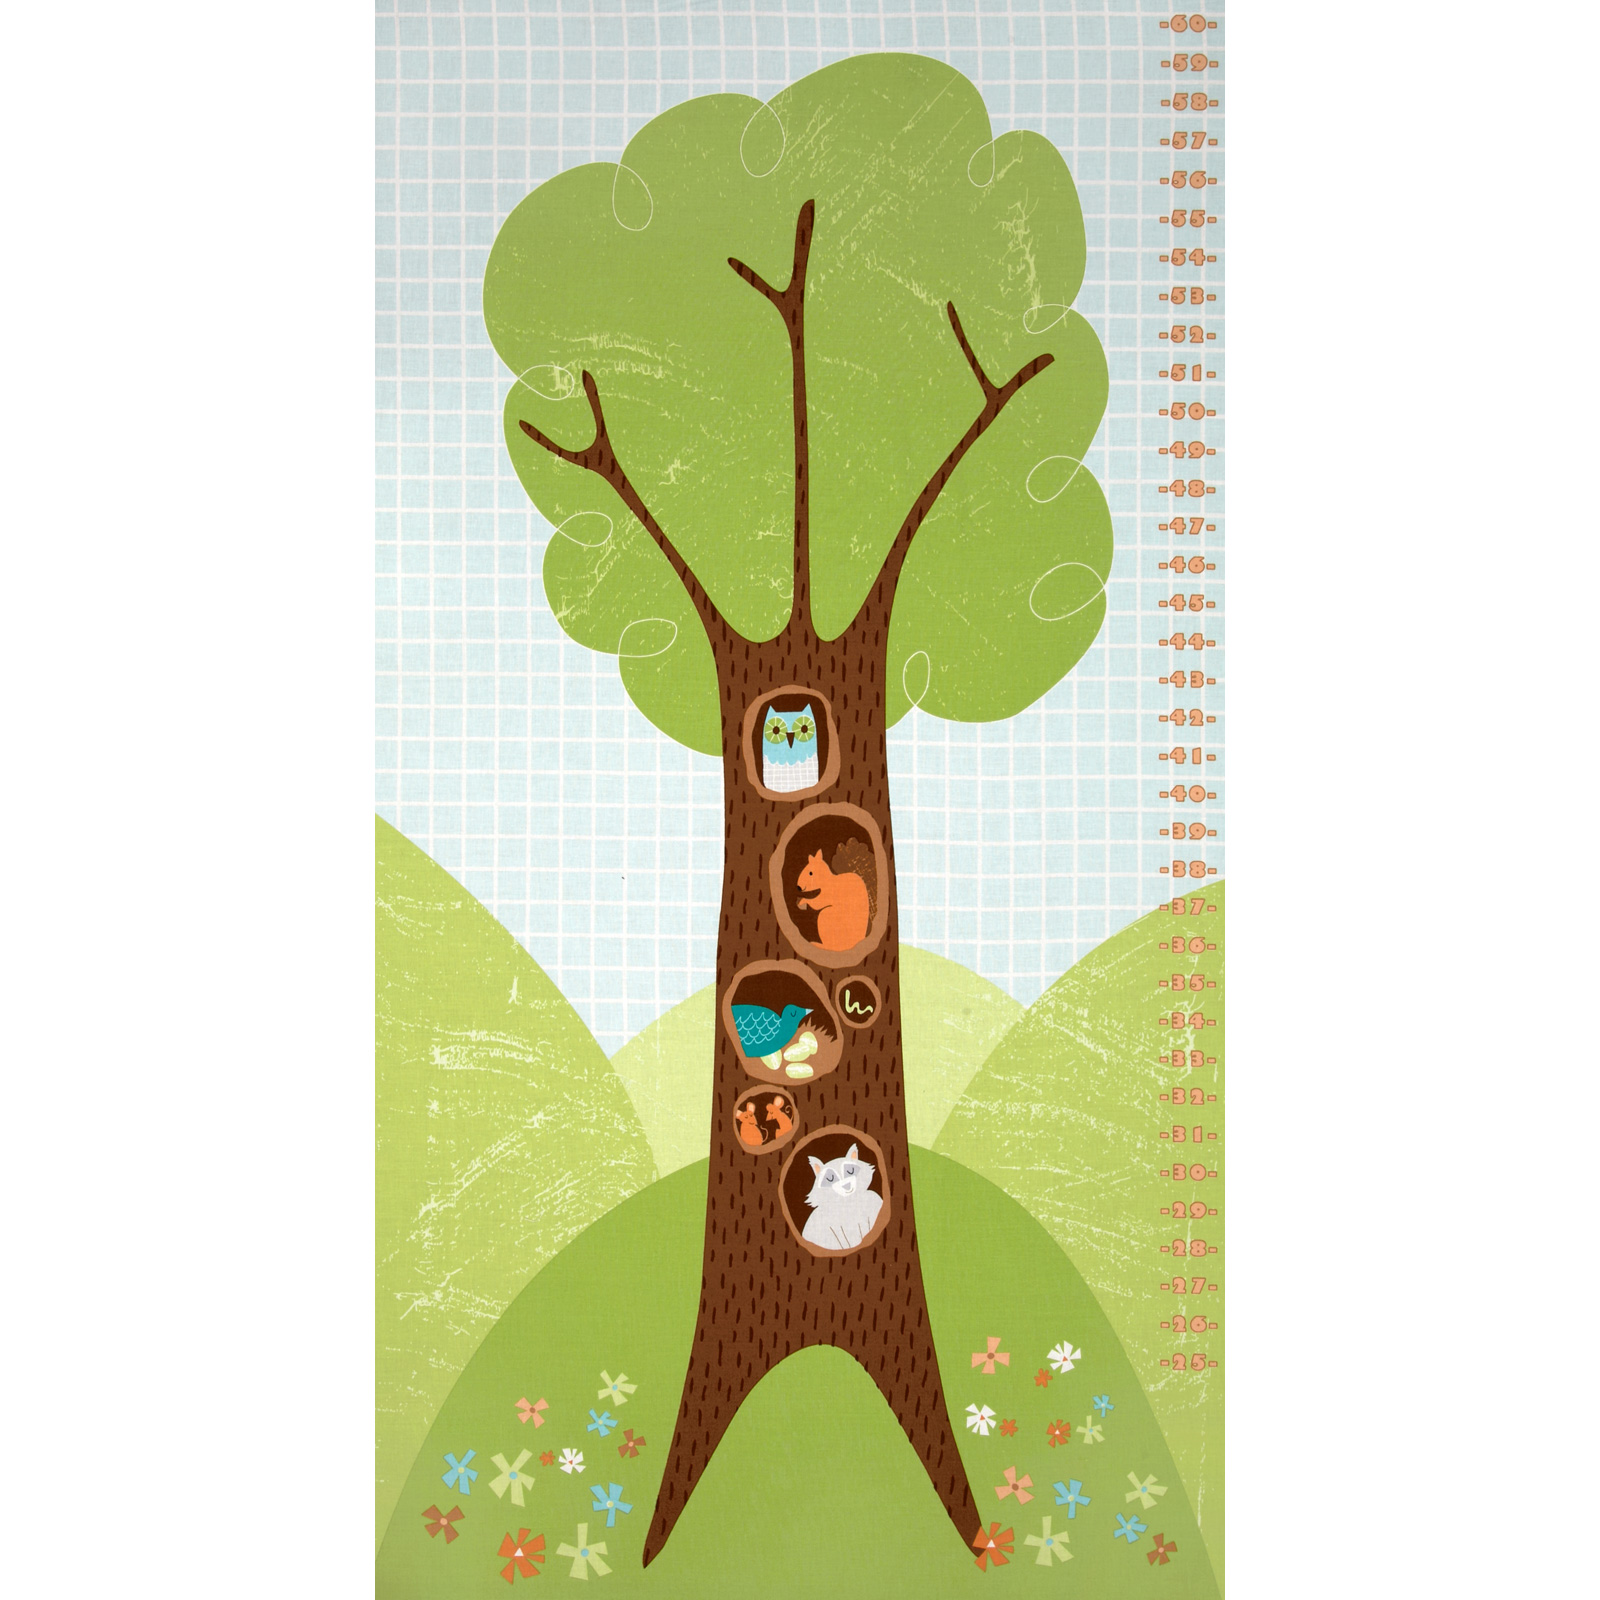 Wonderful Woodlands Growth Chart Green Fabric